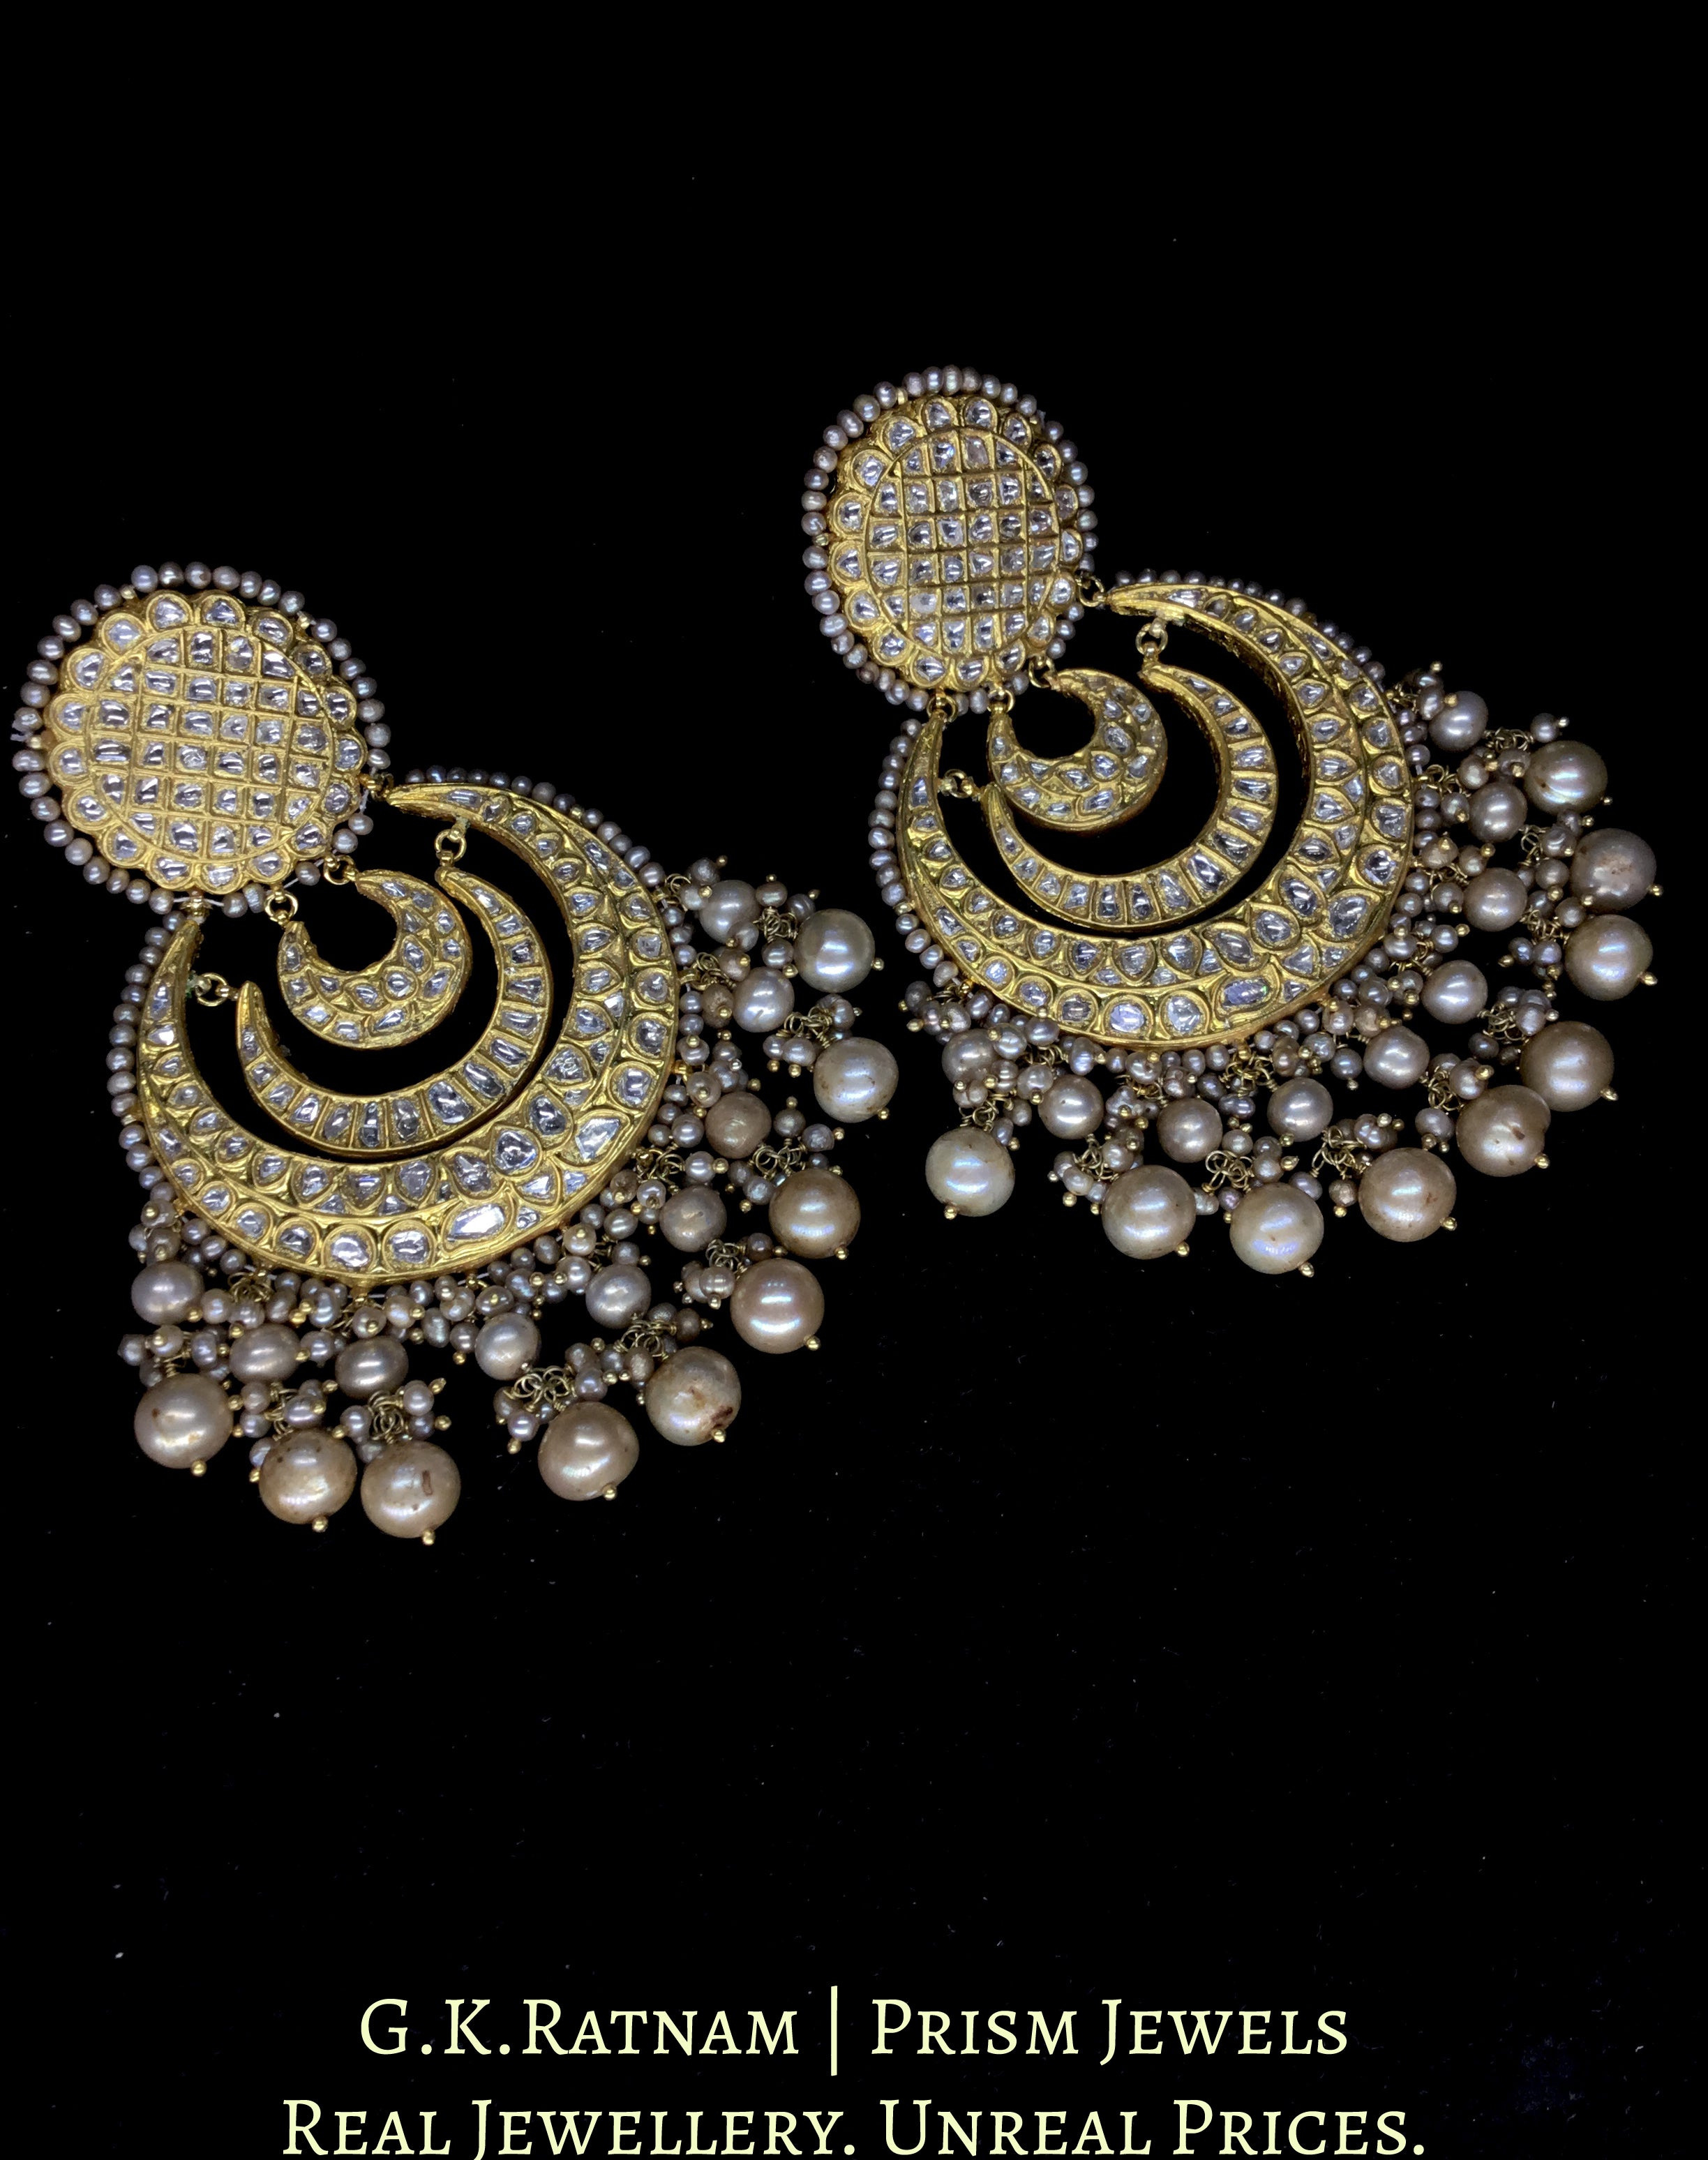 23k Gold and Diamond Polki multi-tier Chand Bali Earring Pair with Antiqued Hyderabadi Pearls